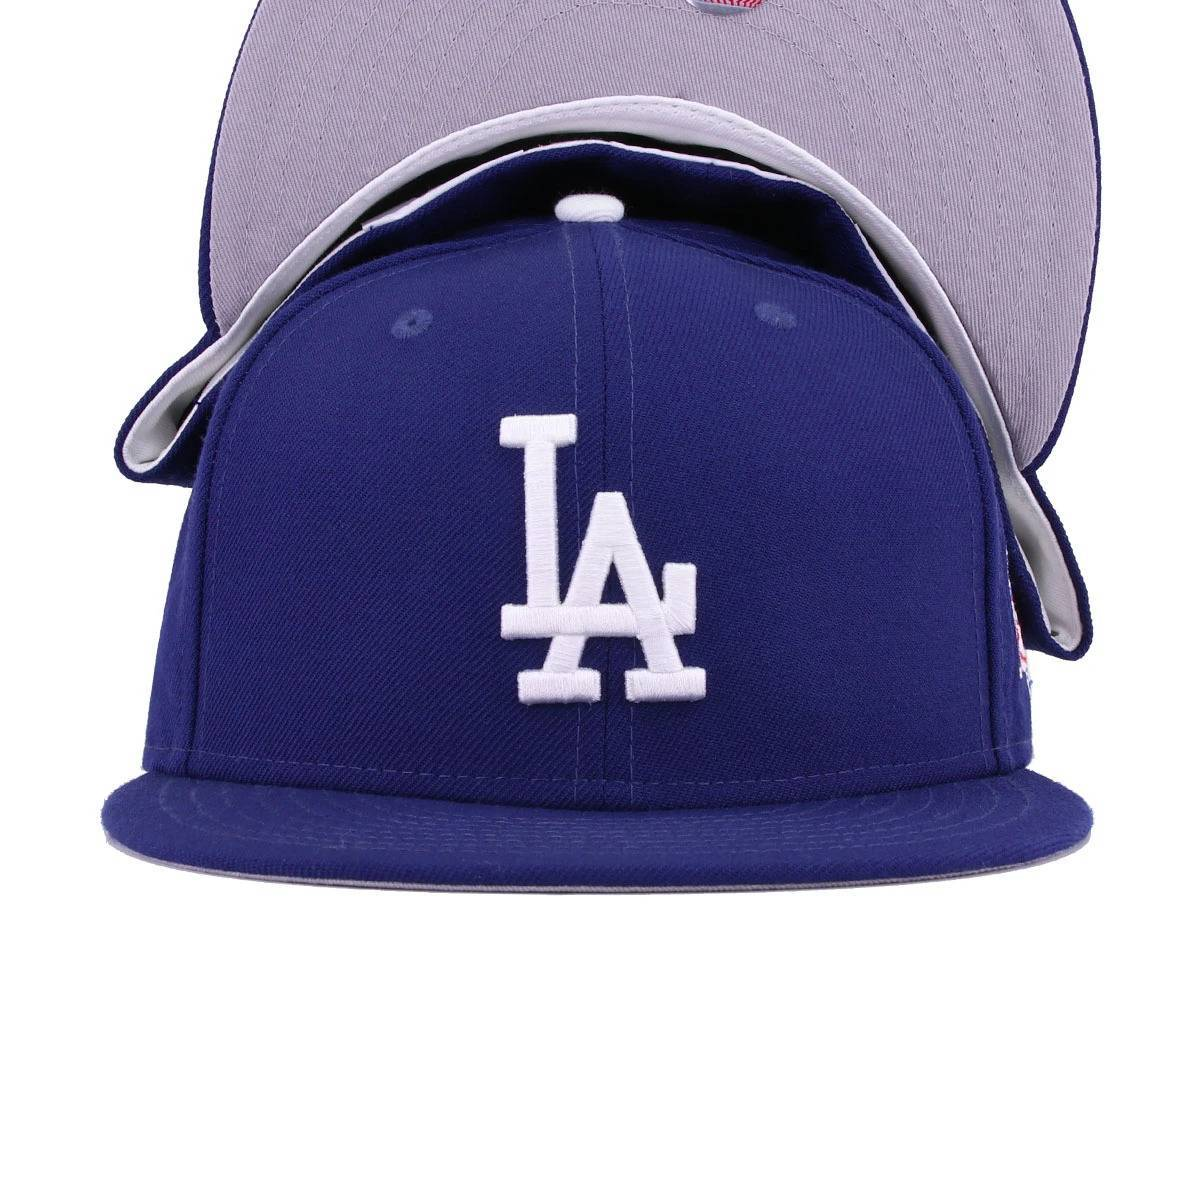 Los Angeles Dodgers Dark Royal 1988 World Series Cooperstown New Era 59Fifty Fitted